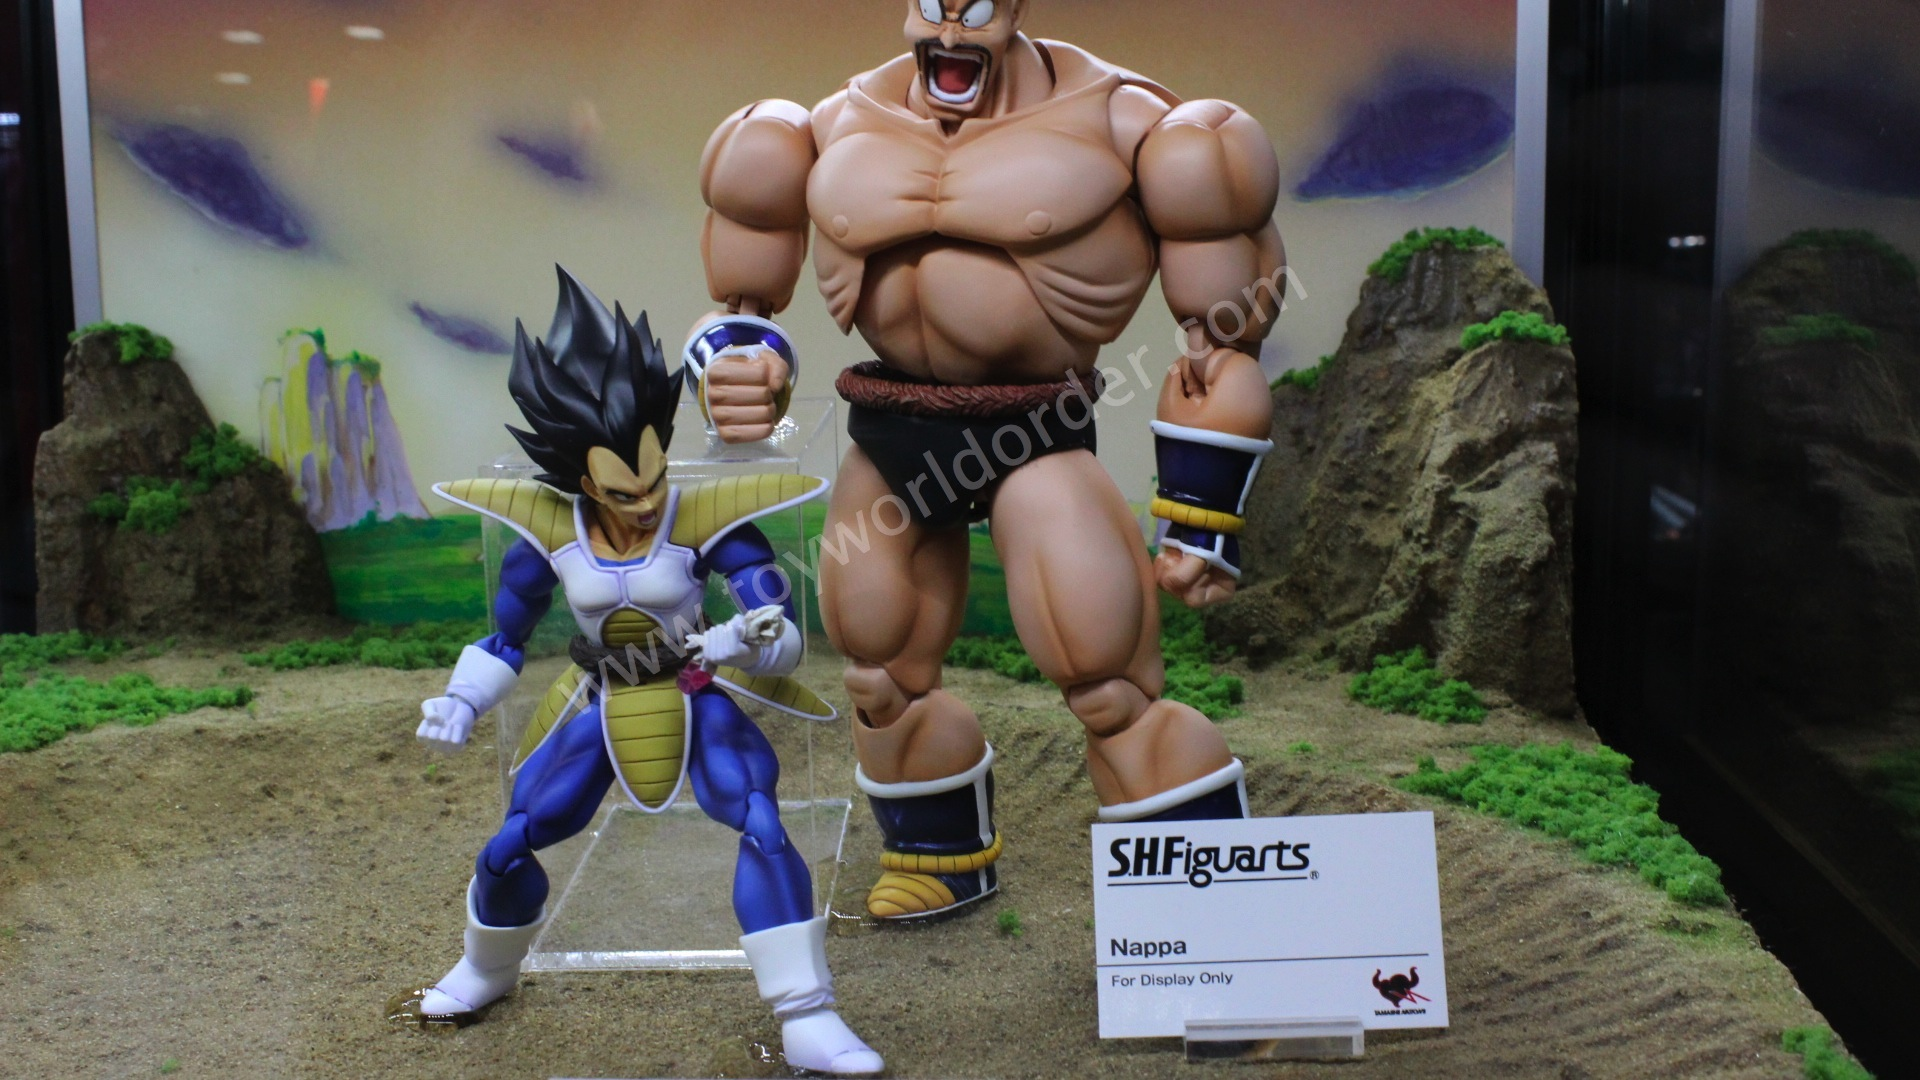 [S.H.Figuarts] Dragon Ball Z - Pagina 2 774775img6555wm